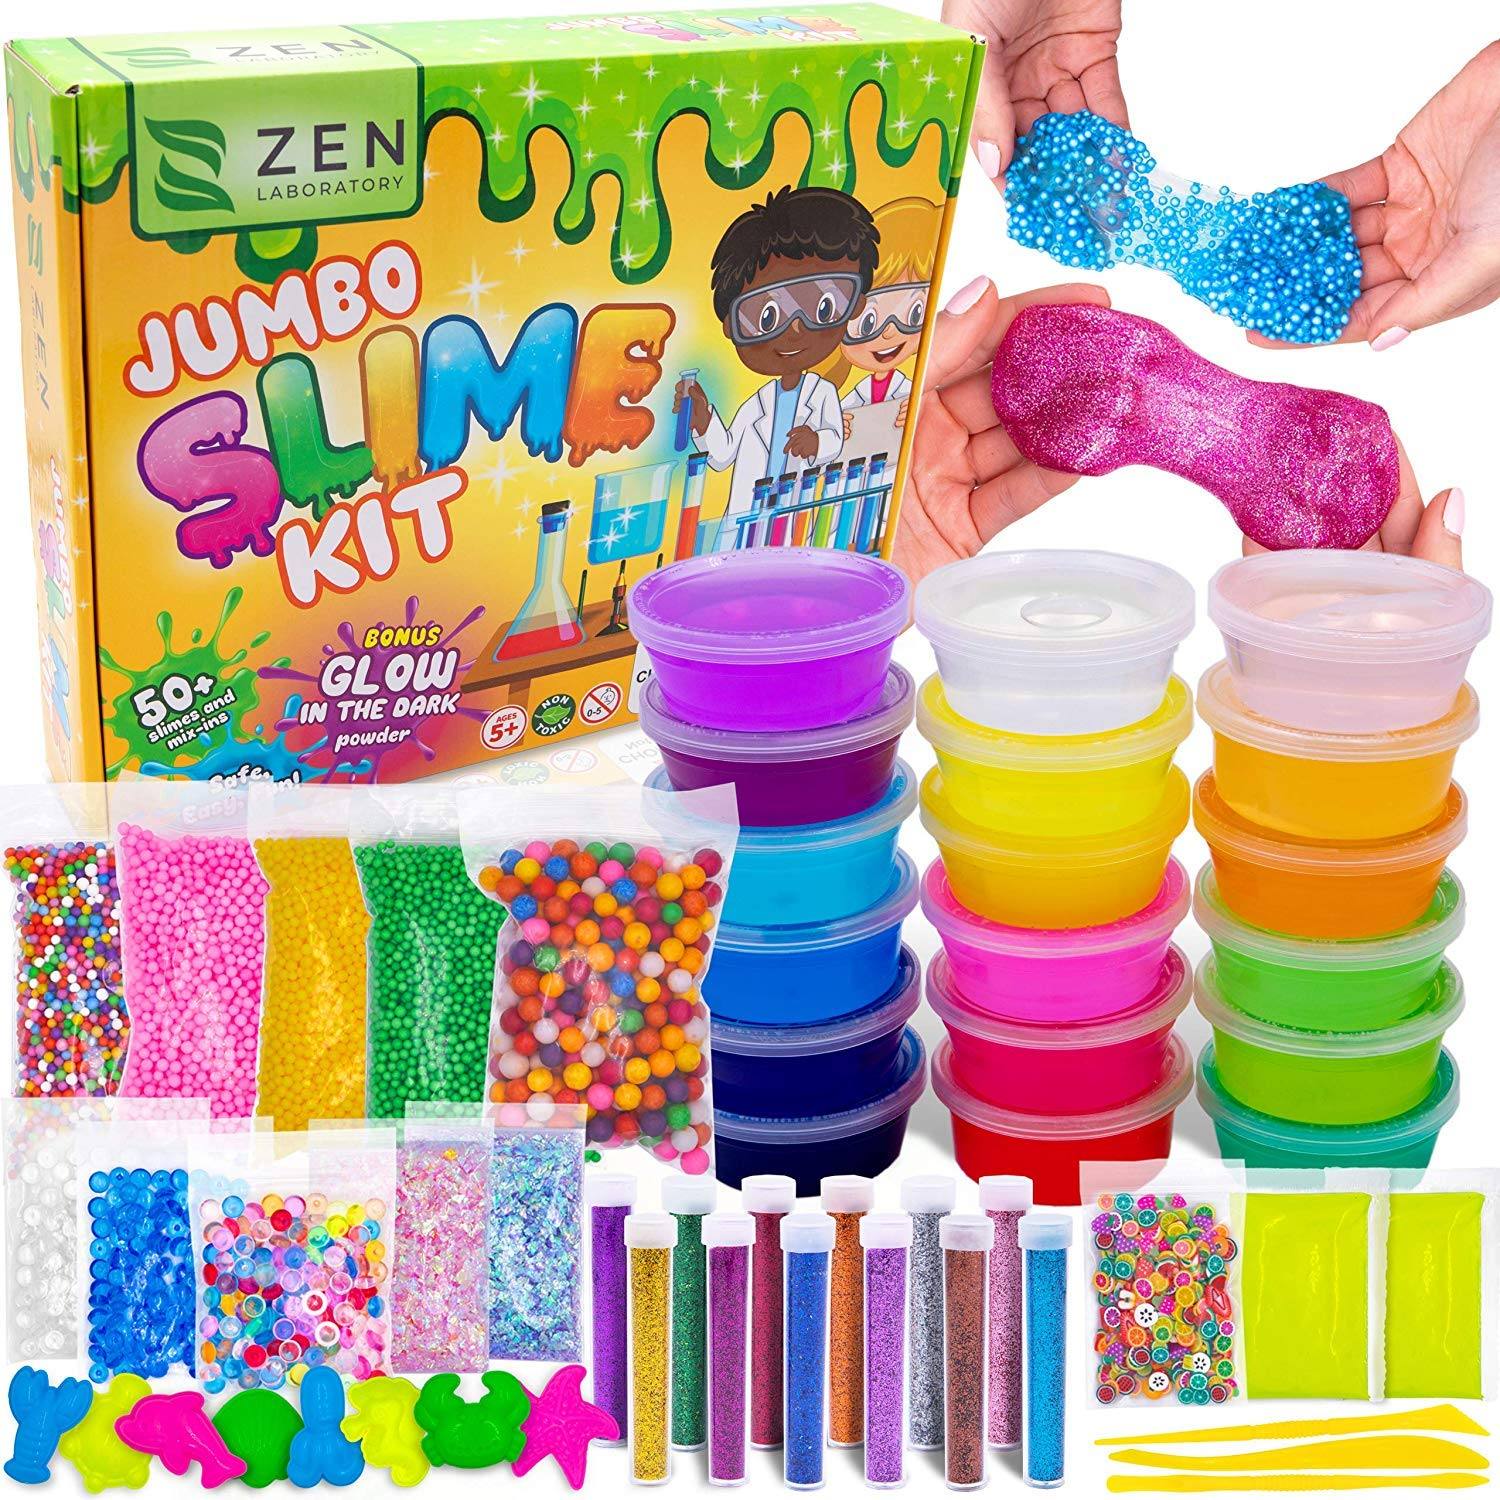 DIY Slime Kit Toy for Kids Girls Boys Ages 5-12, Glow in The Dark Glitter Slime Making Kit - Slime Supplies w/ Foam Beads Balls, 18 Mystery Box Containers Filled Crystal Powder Slime